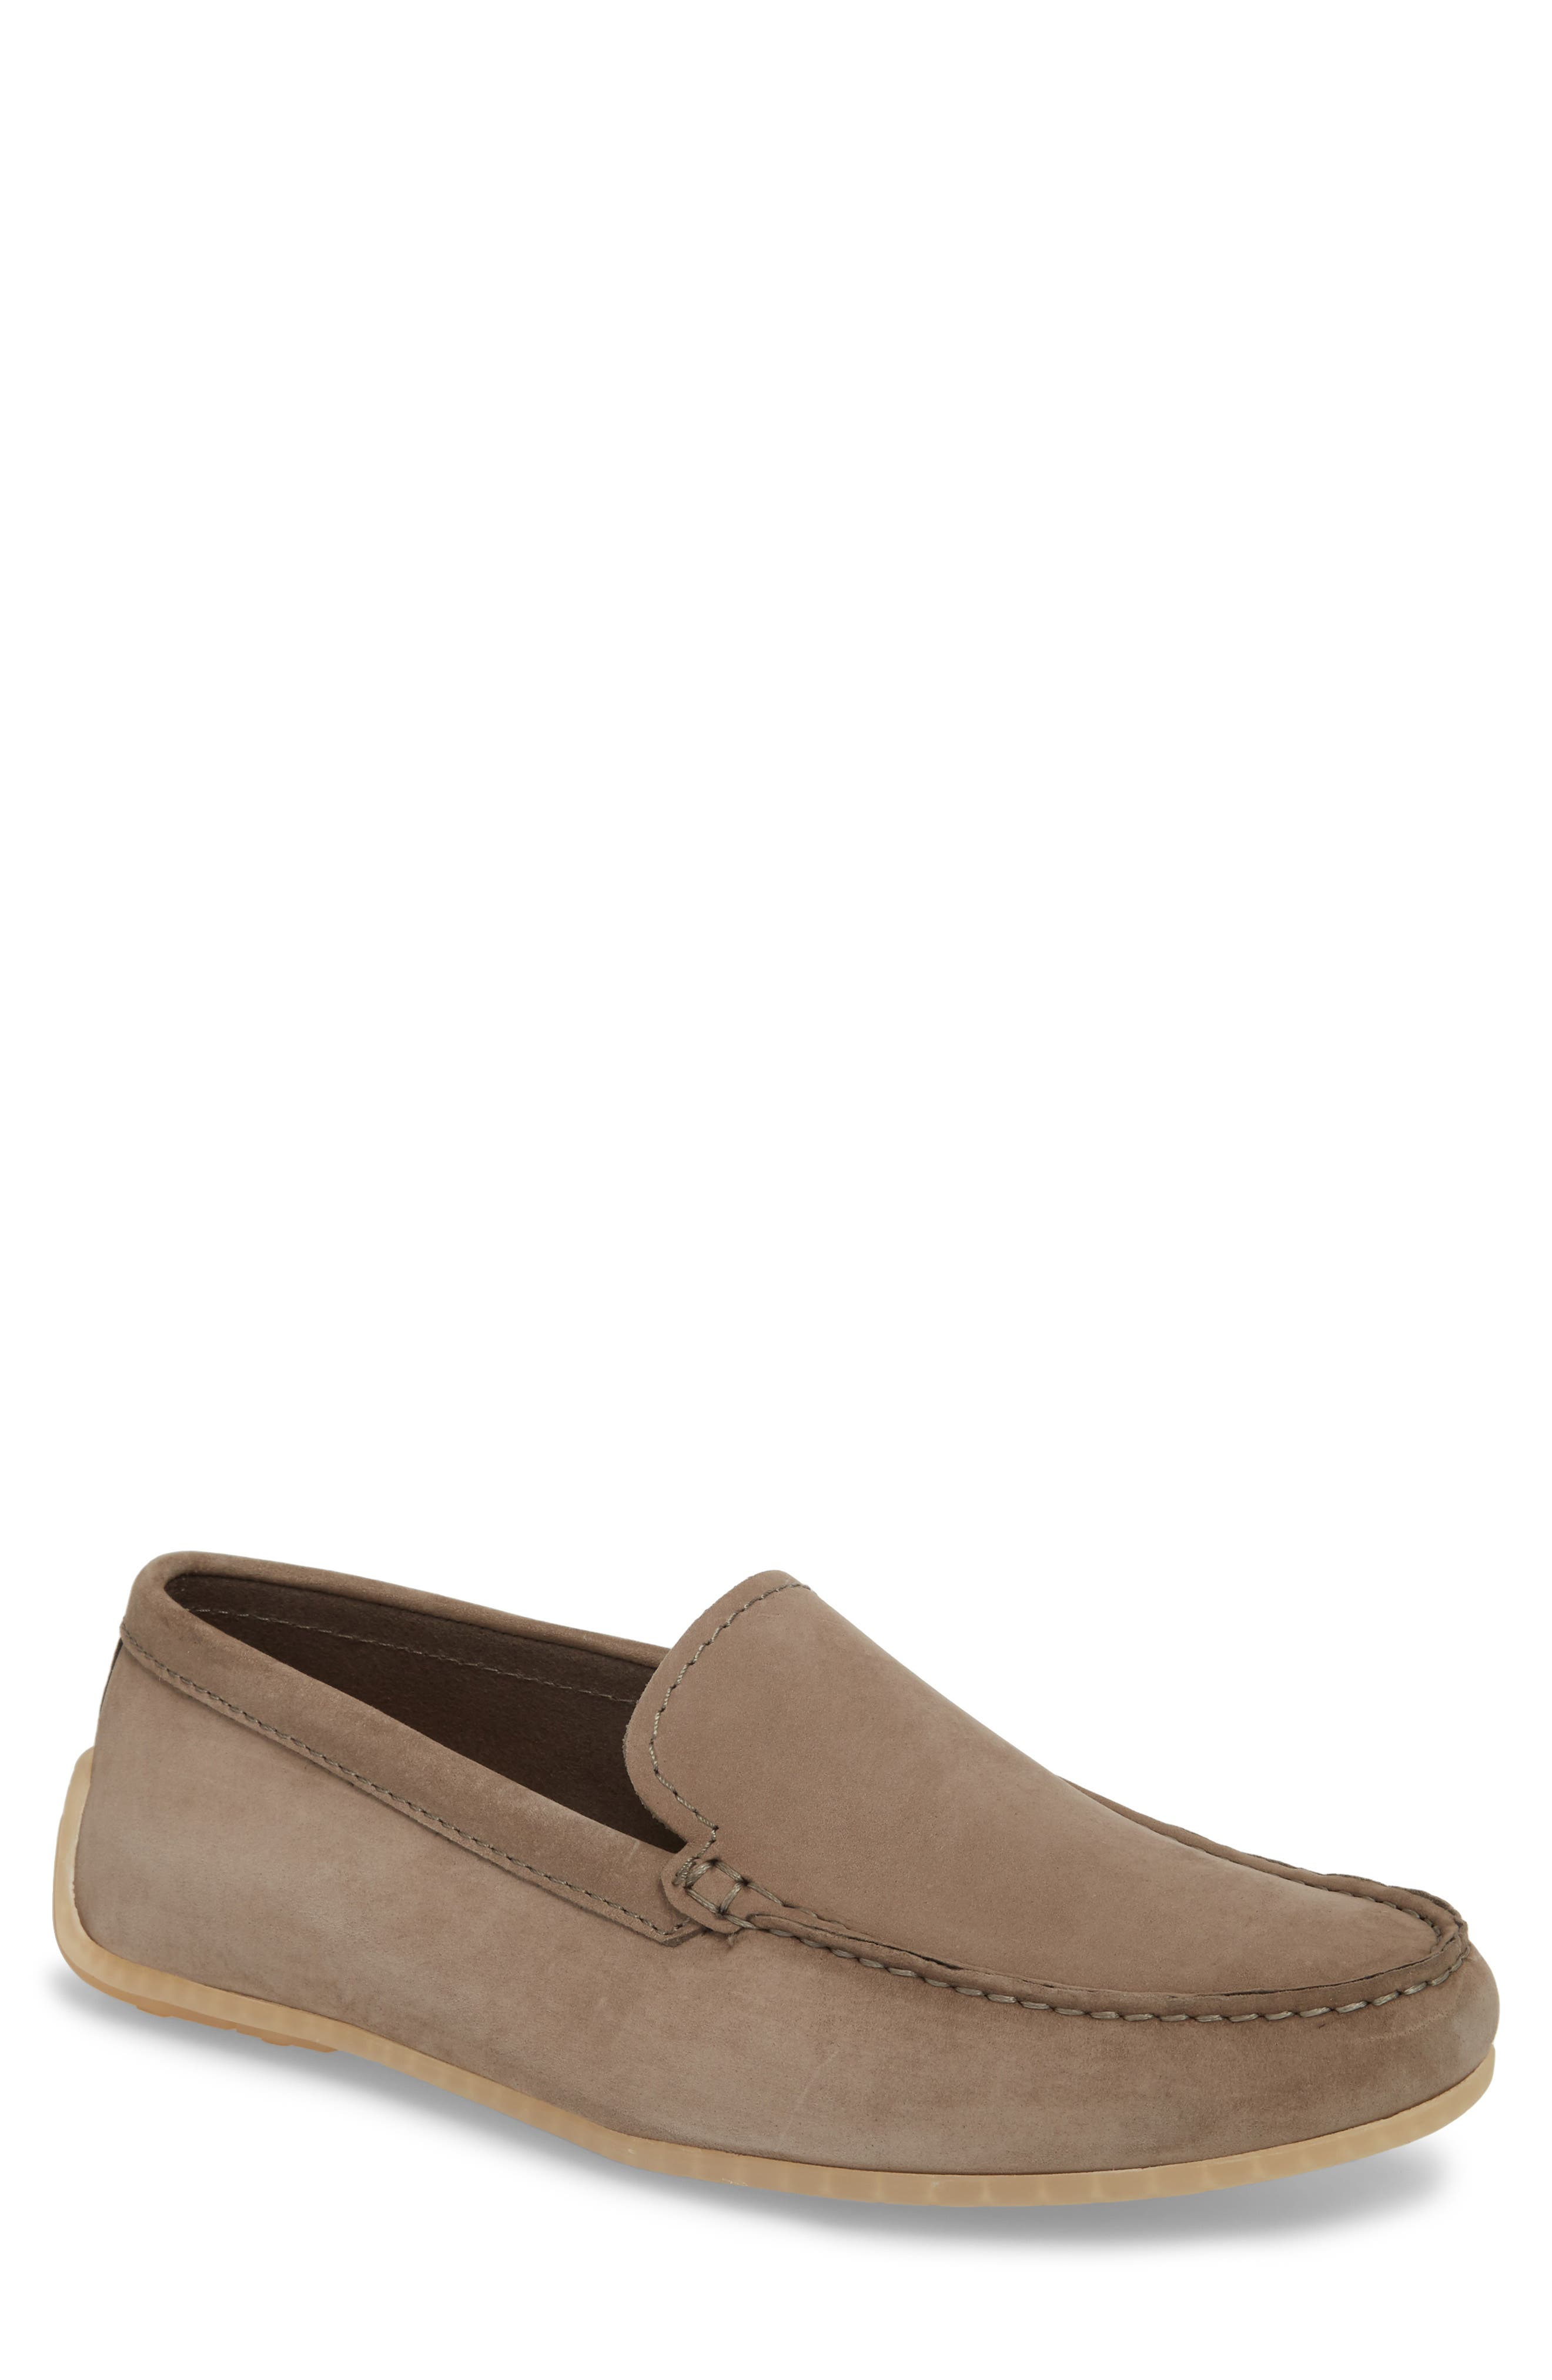 Clarks<sup>®</sup> Reazor Edge Driving Moccasin,                             Main thumbnail 1, color,                             SAGE NUBUCK